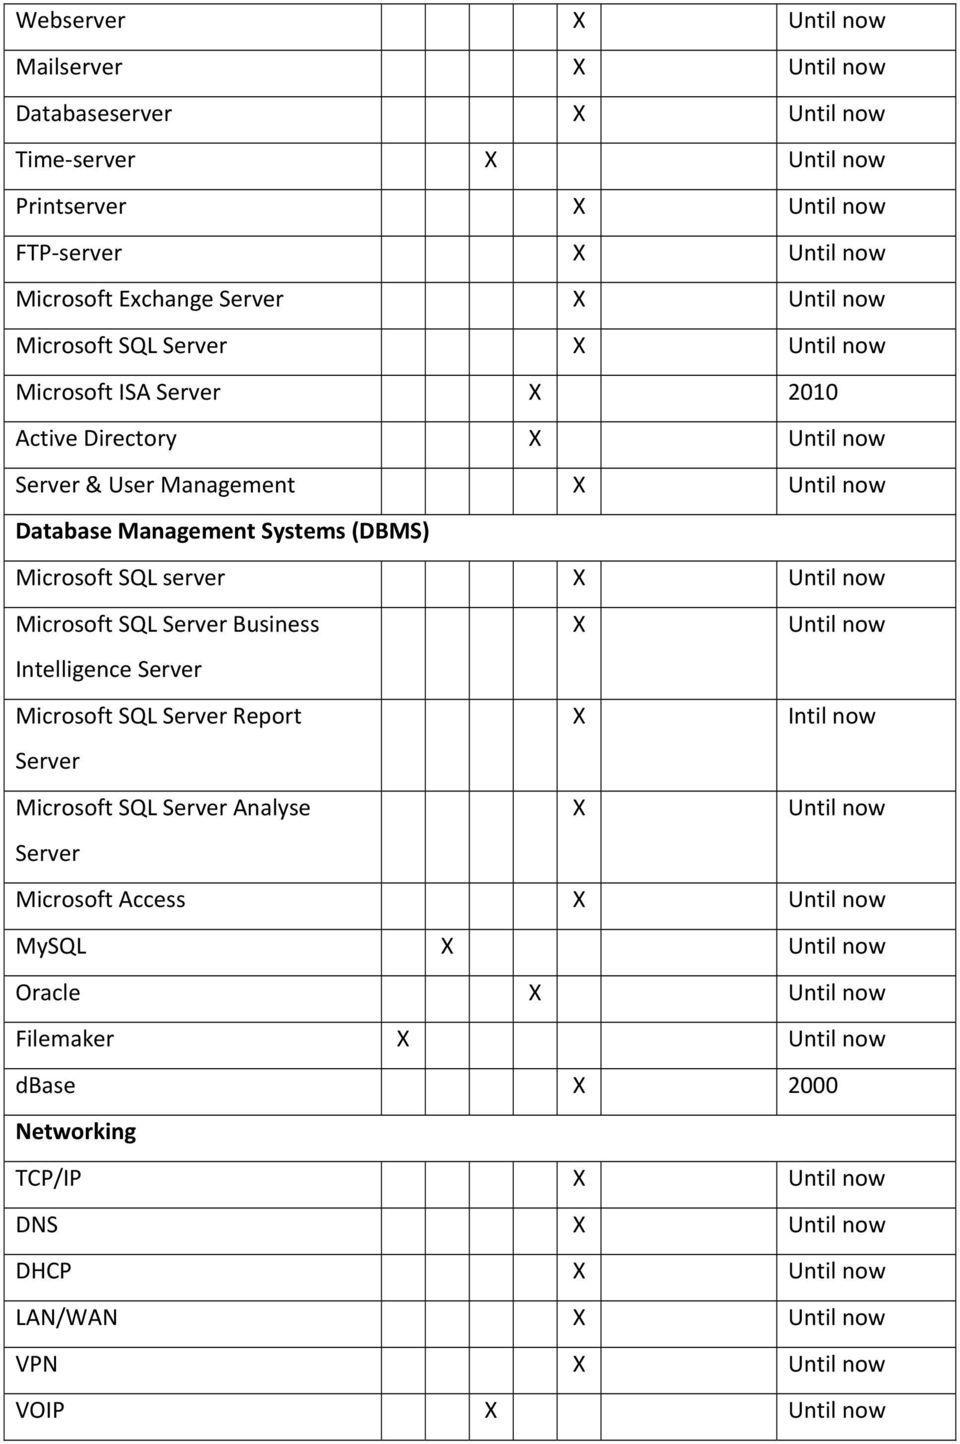 Until now Microsoft SQL Server Business X Until now Intelligence Server Microsoft SQL Server Report X Intil now Server Microsoft SQL Server Analyse X Until now Server Microsoft Access X